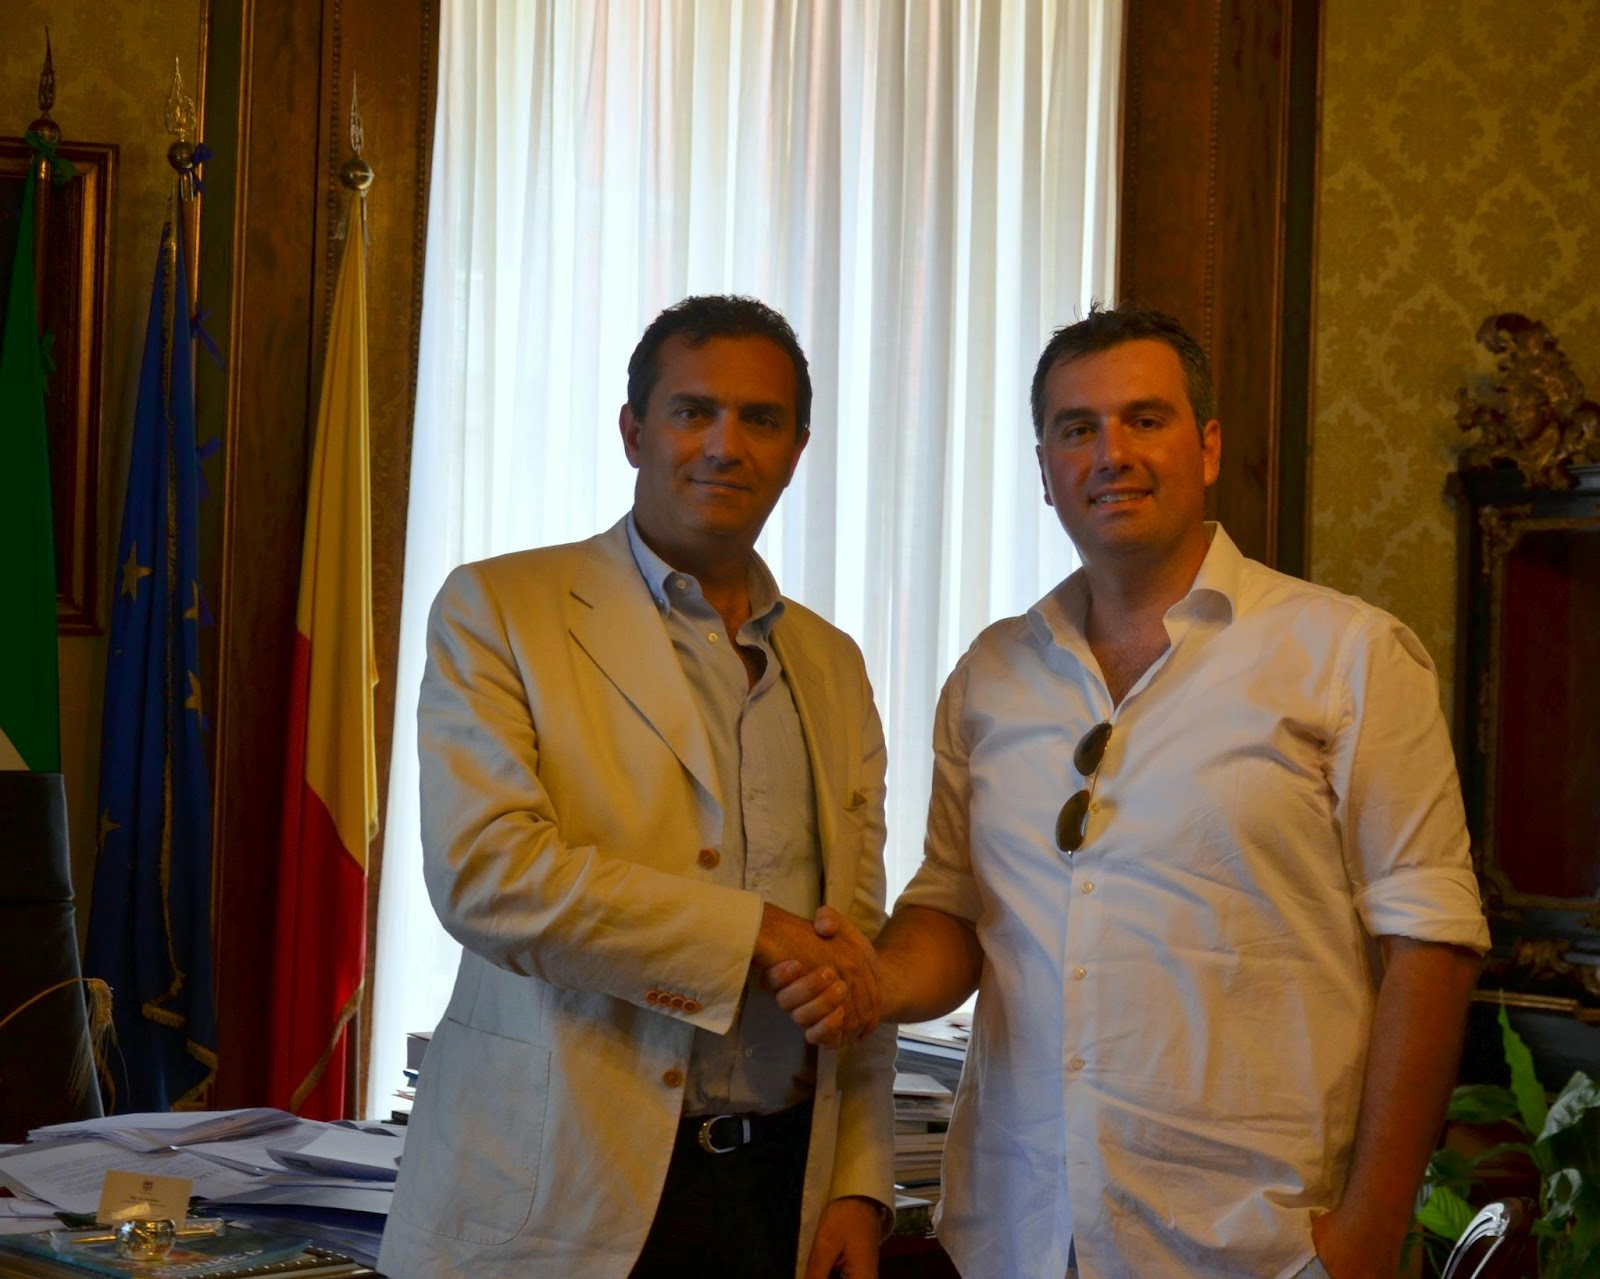 luigi de magistris and jerry de concilio to improve cycling in napoli